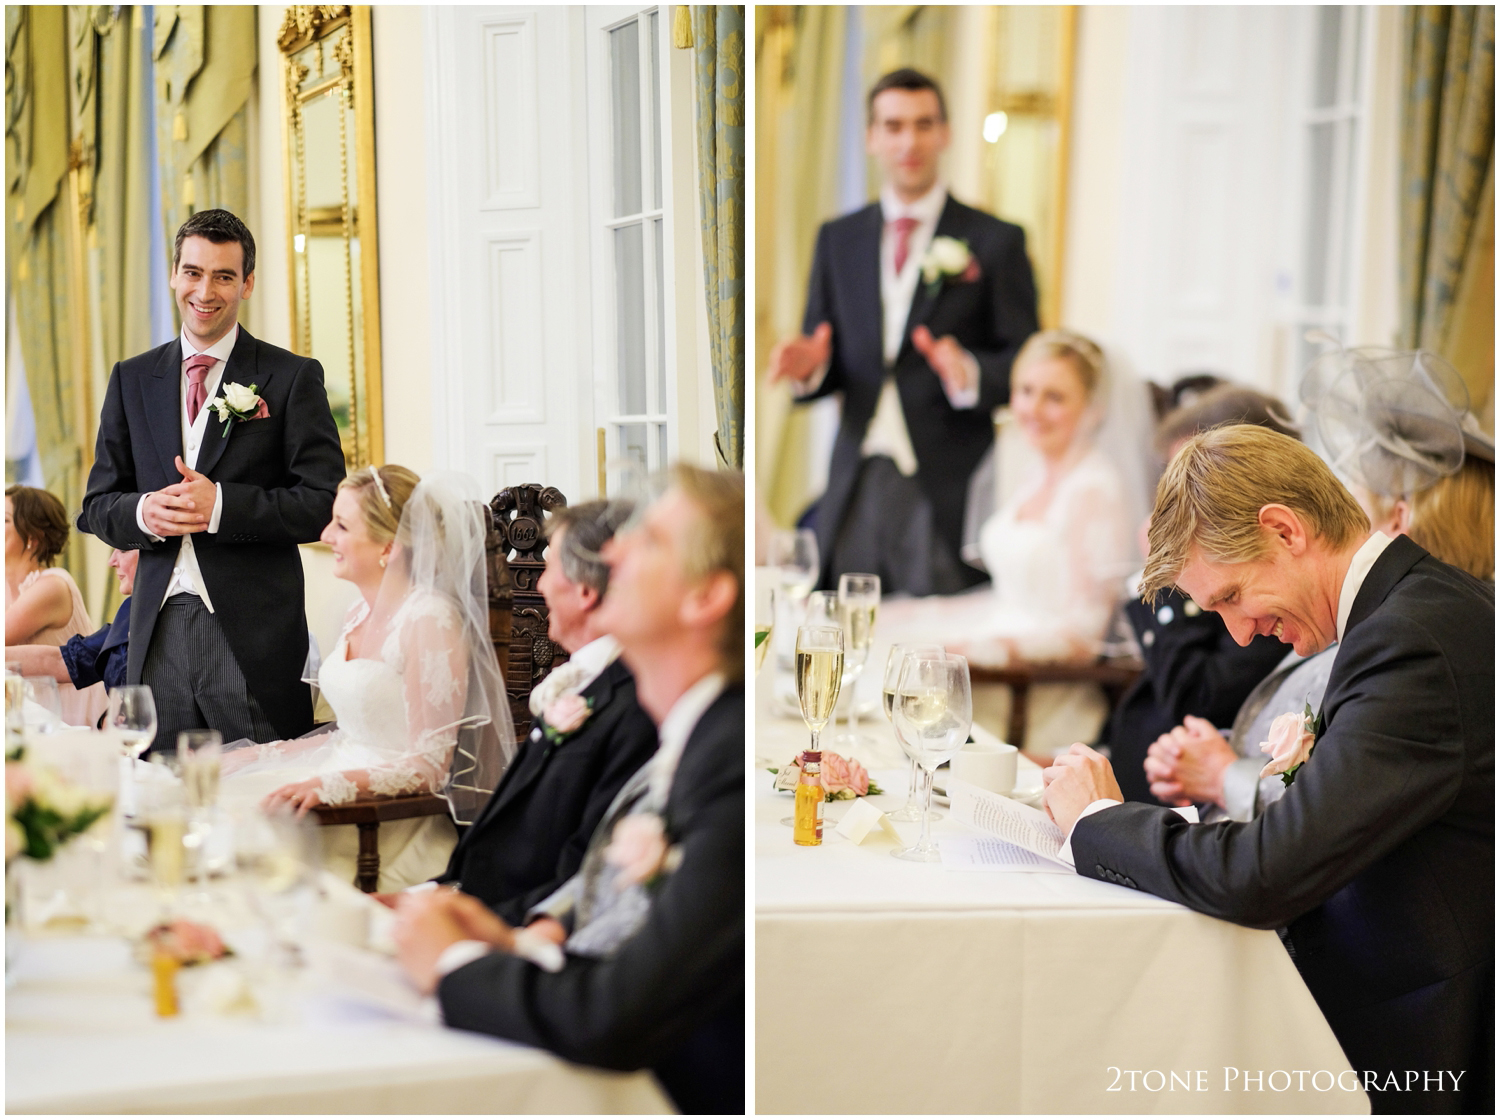 ...and adds a few final words, funny stories about his good friend and best man before it is his turn.